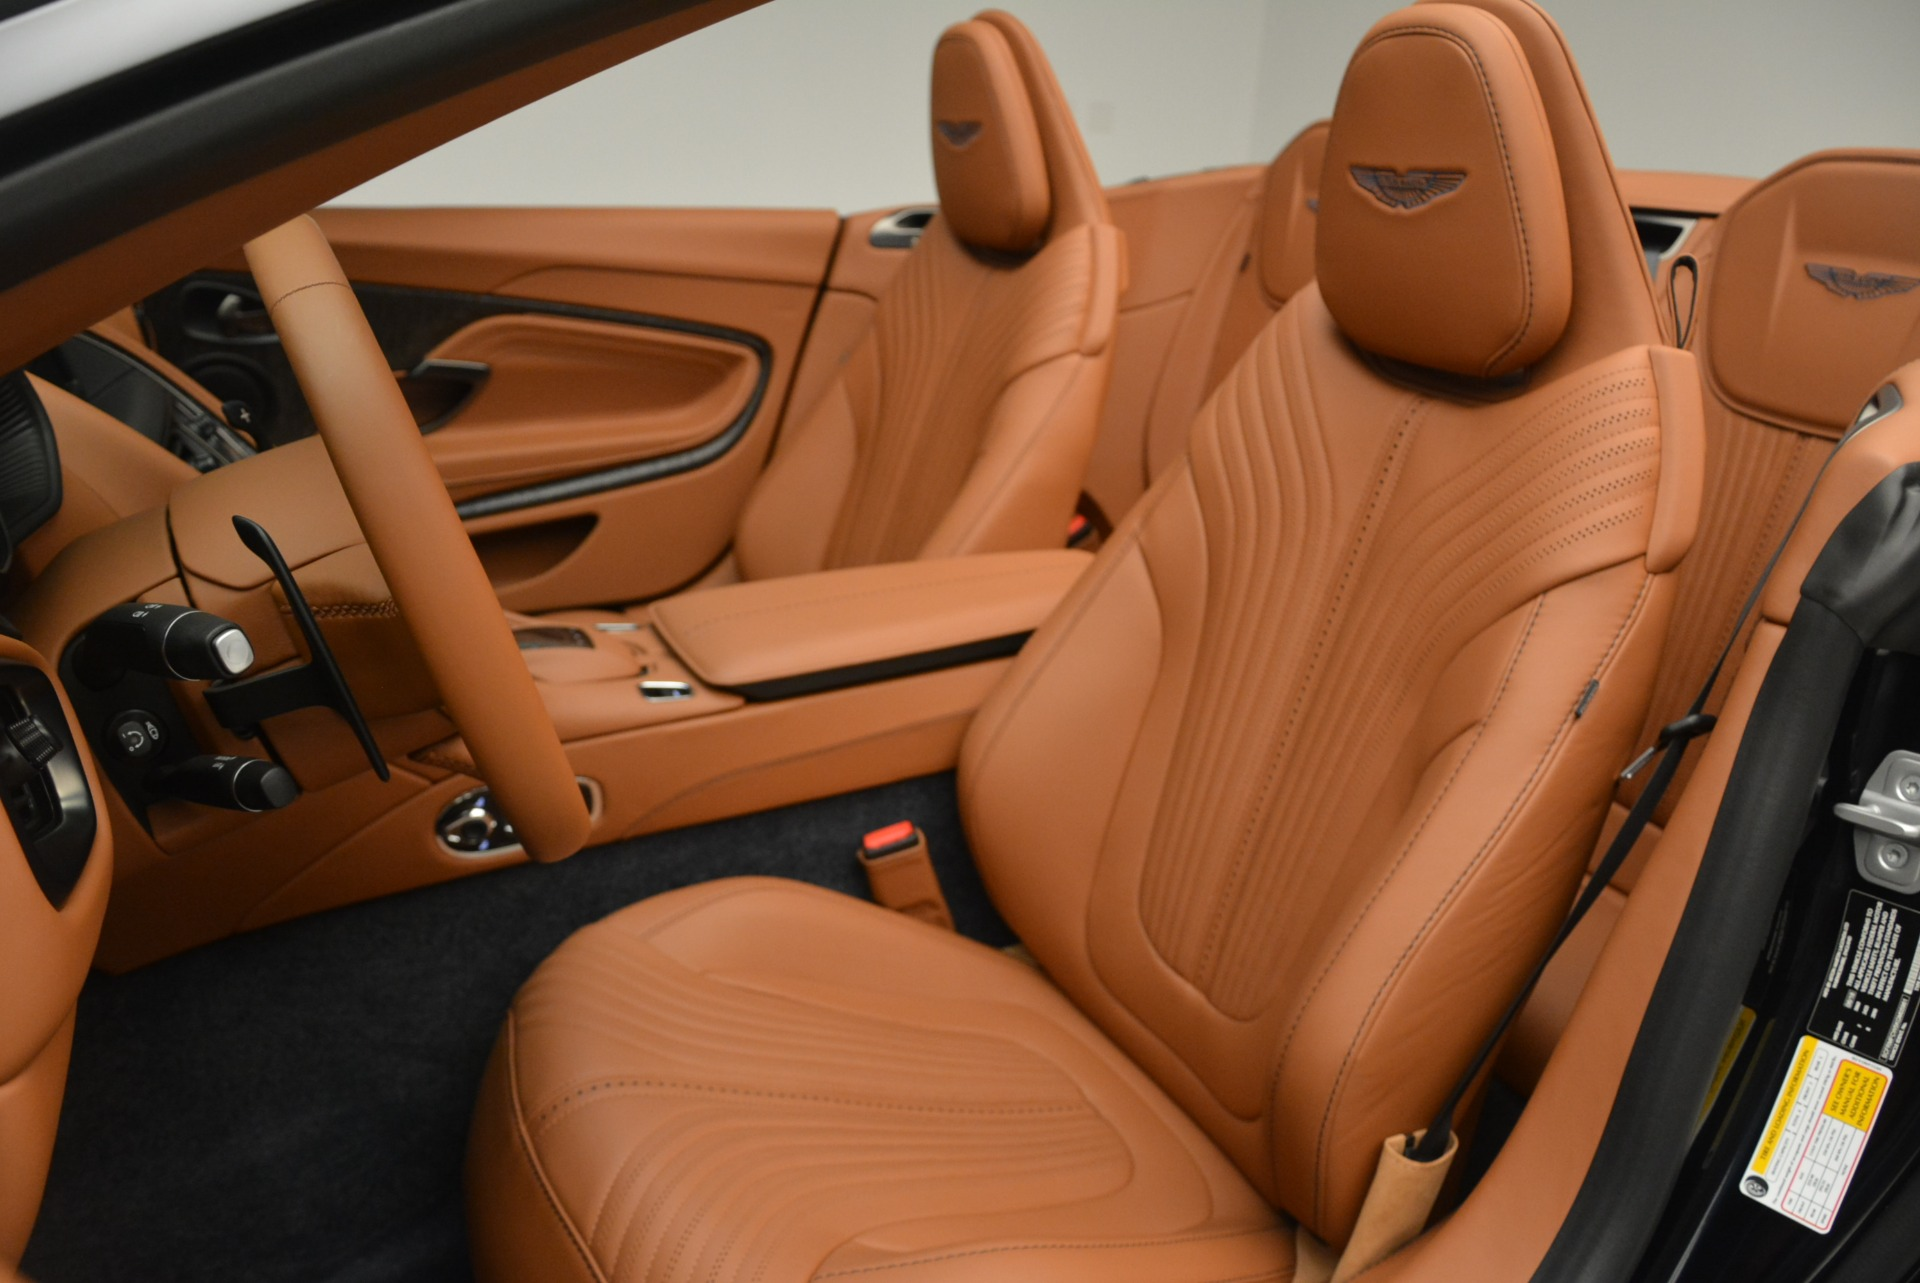 New 2019 Aston Martin DB11 Volante Volante For Sale In Westport, CT 2450_p22